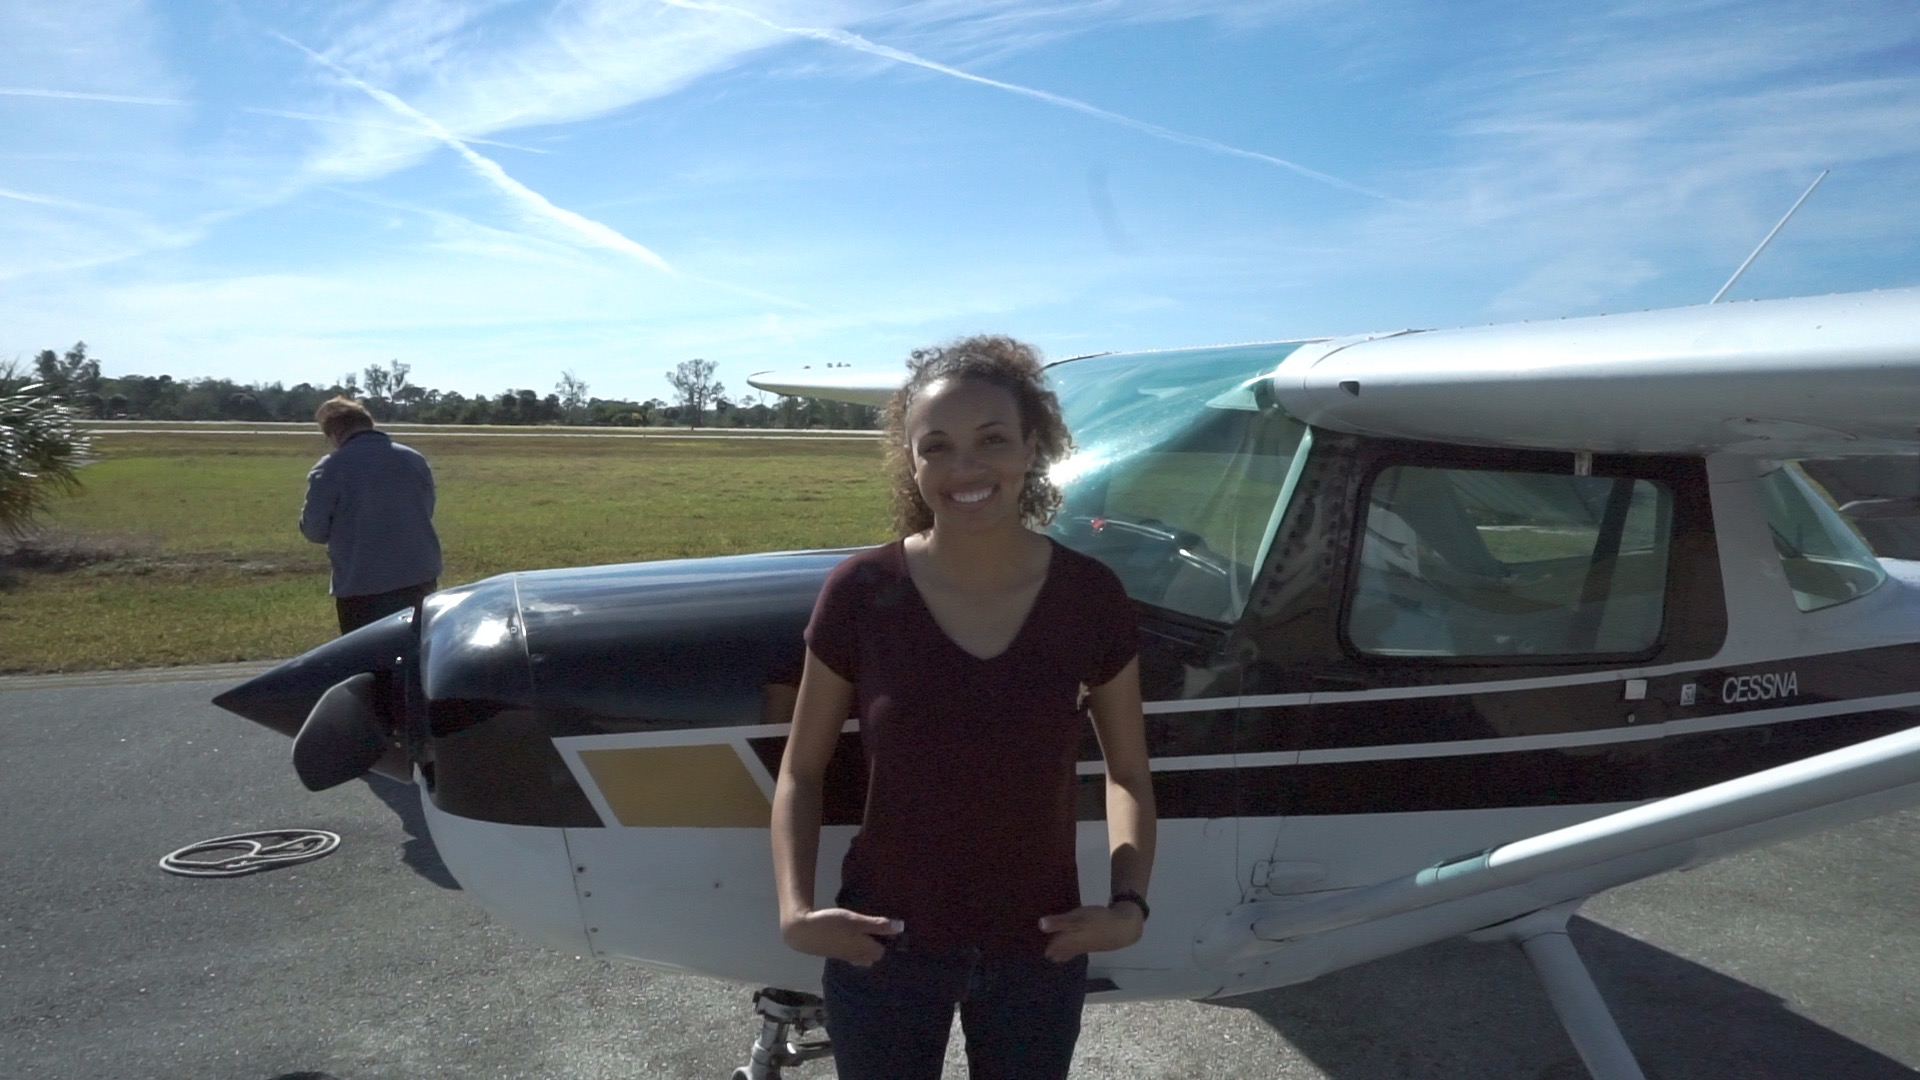 Learning To Fly Airplanes - What Does It Take To Learn To ...